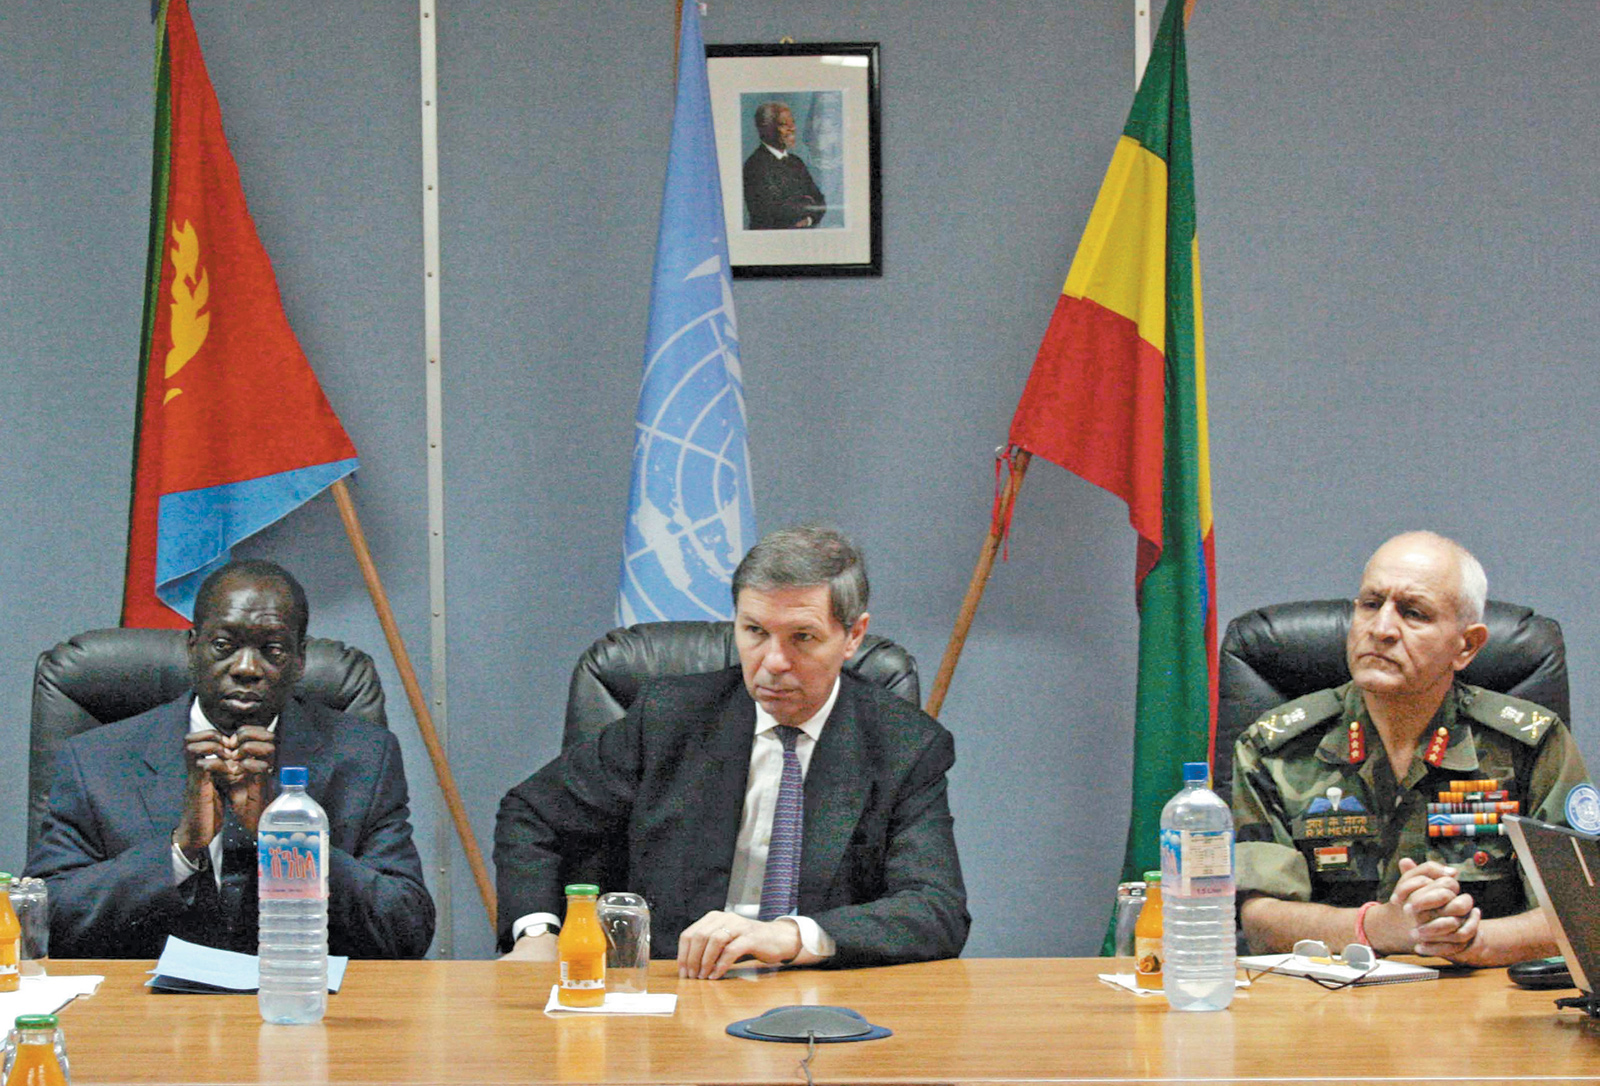 Jean-Marie Guéhenno (center), then the UN's undersecretary-general for peacekeeping operations, at a meeting at the UN Mission in Ethiopia and Eritrea, with deputy special representative Joël Adechi and military adviser Major-General Randhir Kumar Mehta, Asmara, Eritrea, December 2005